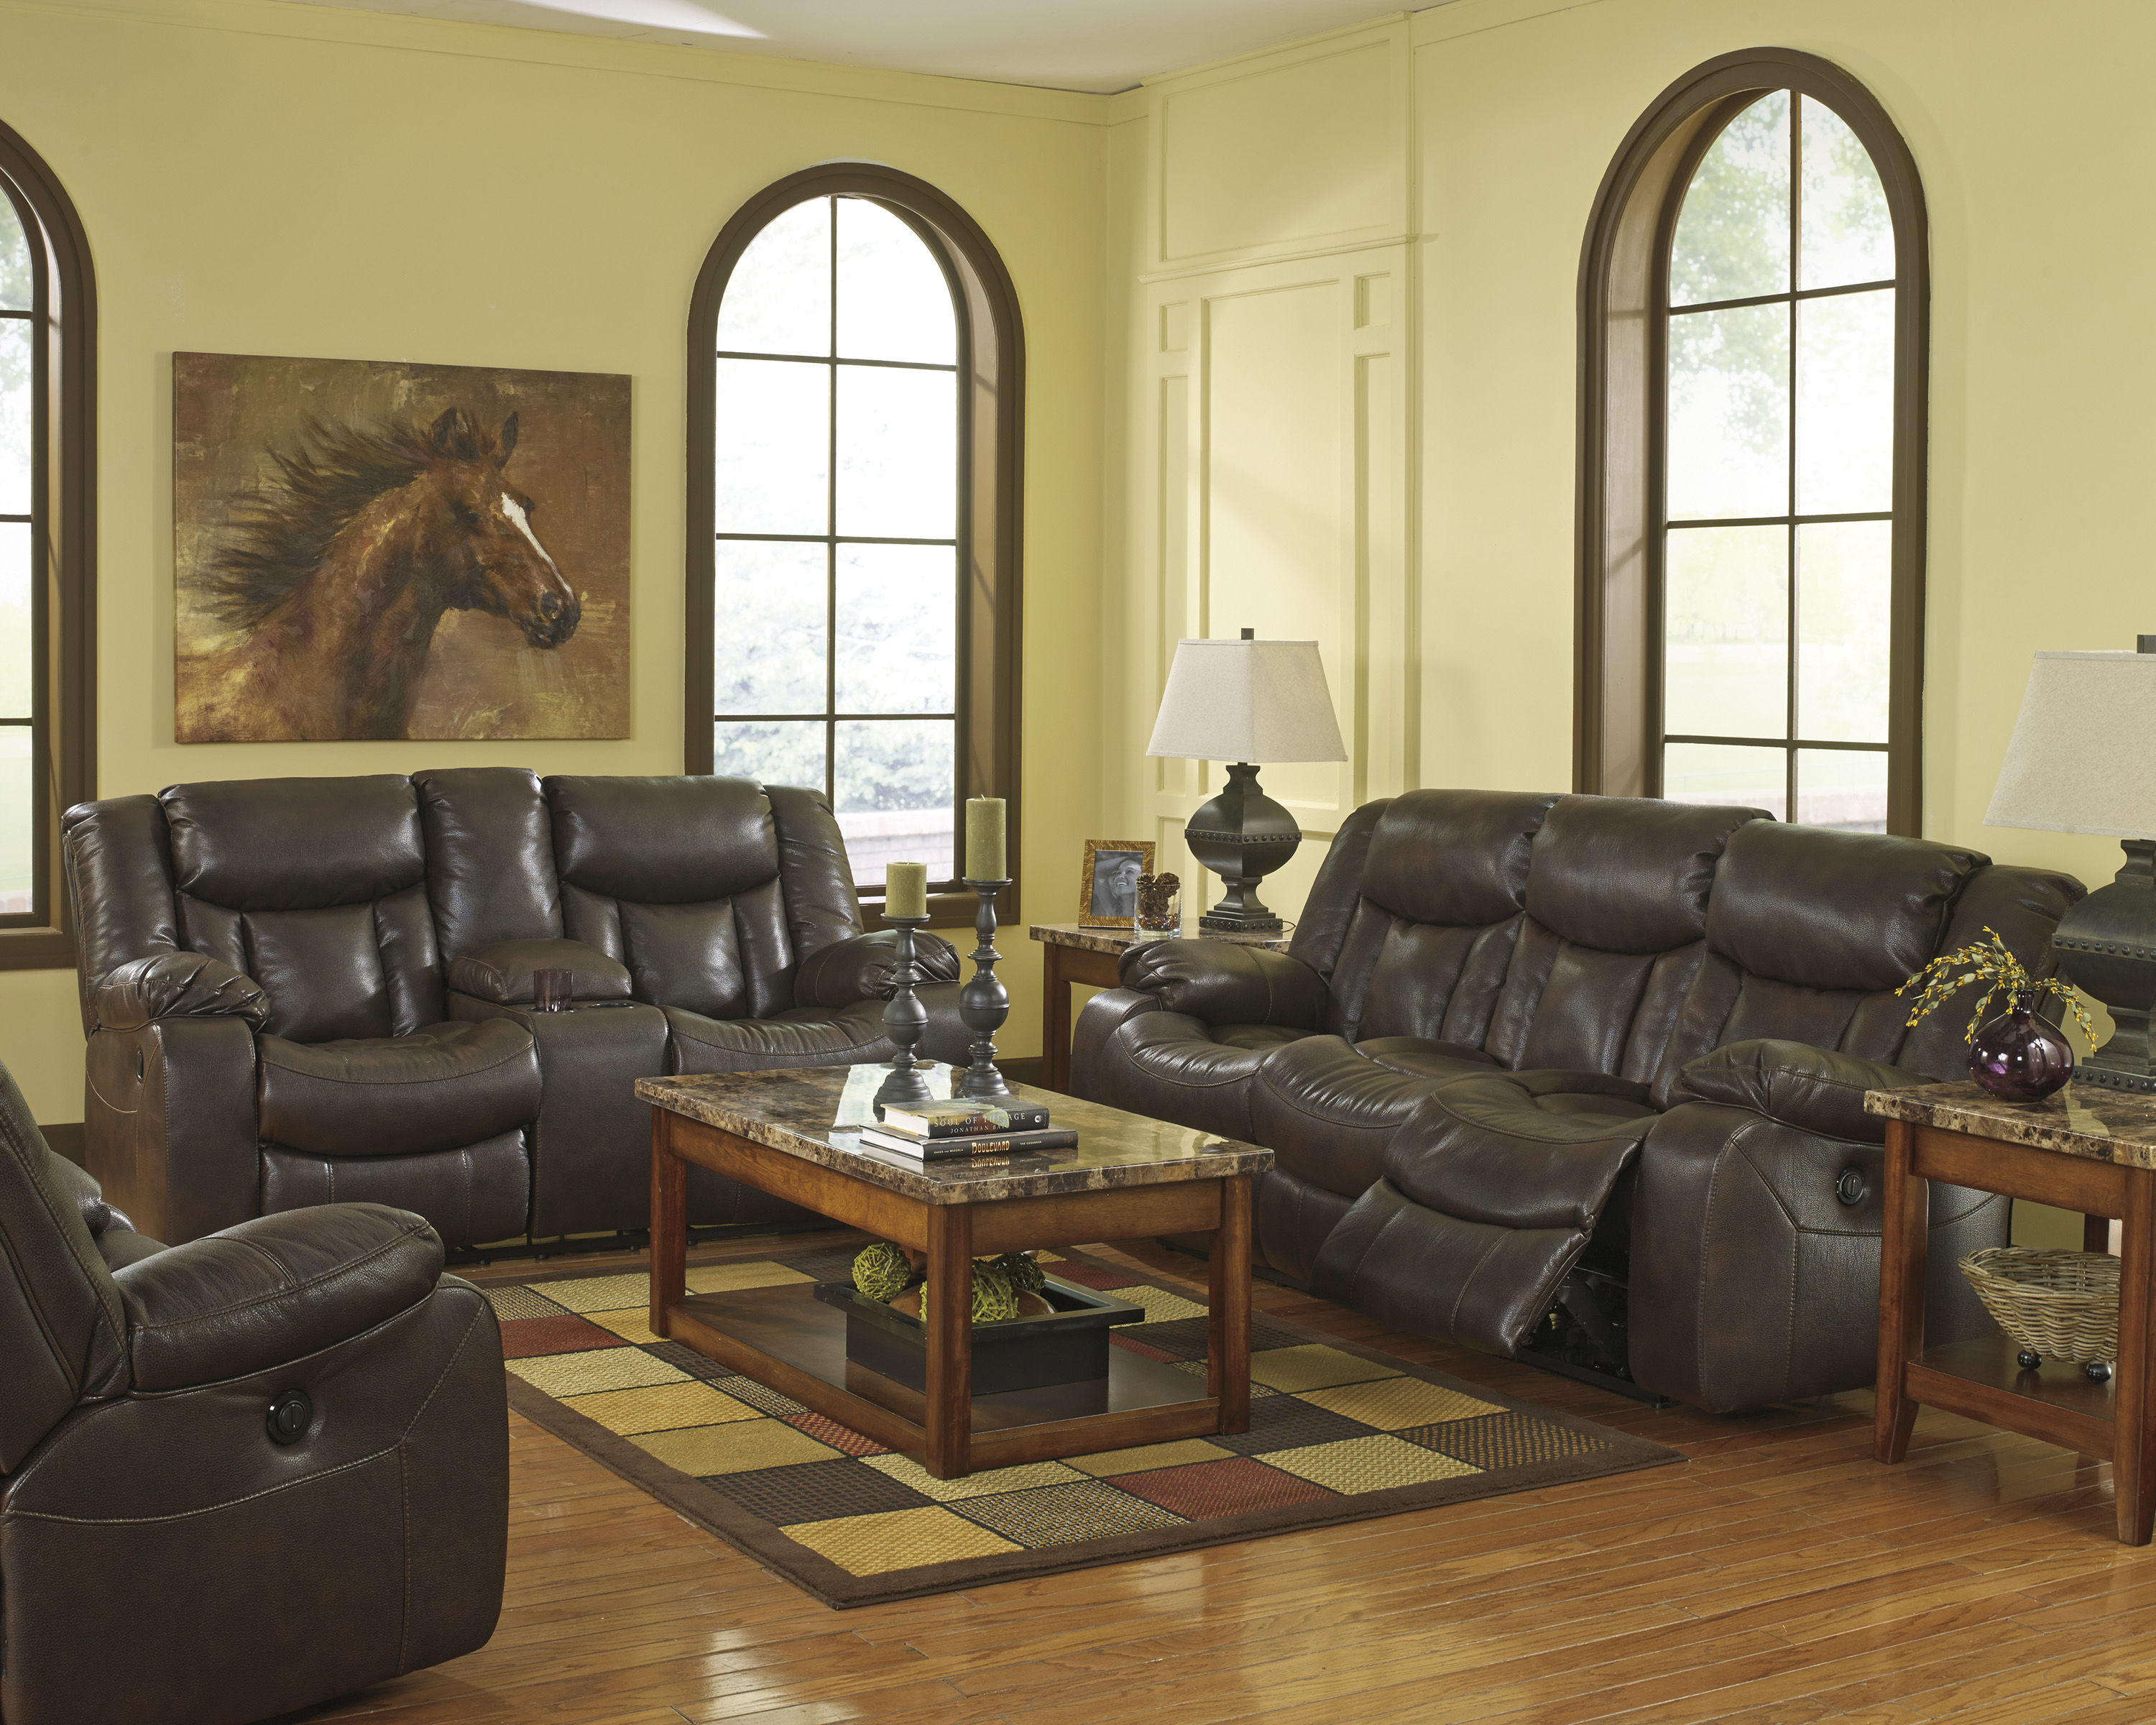 Carnell brown faux leather living room set the classy home for Brown leather living room set